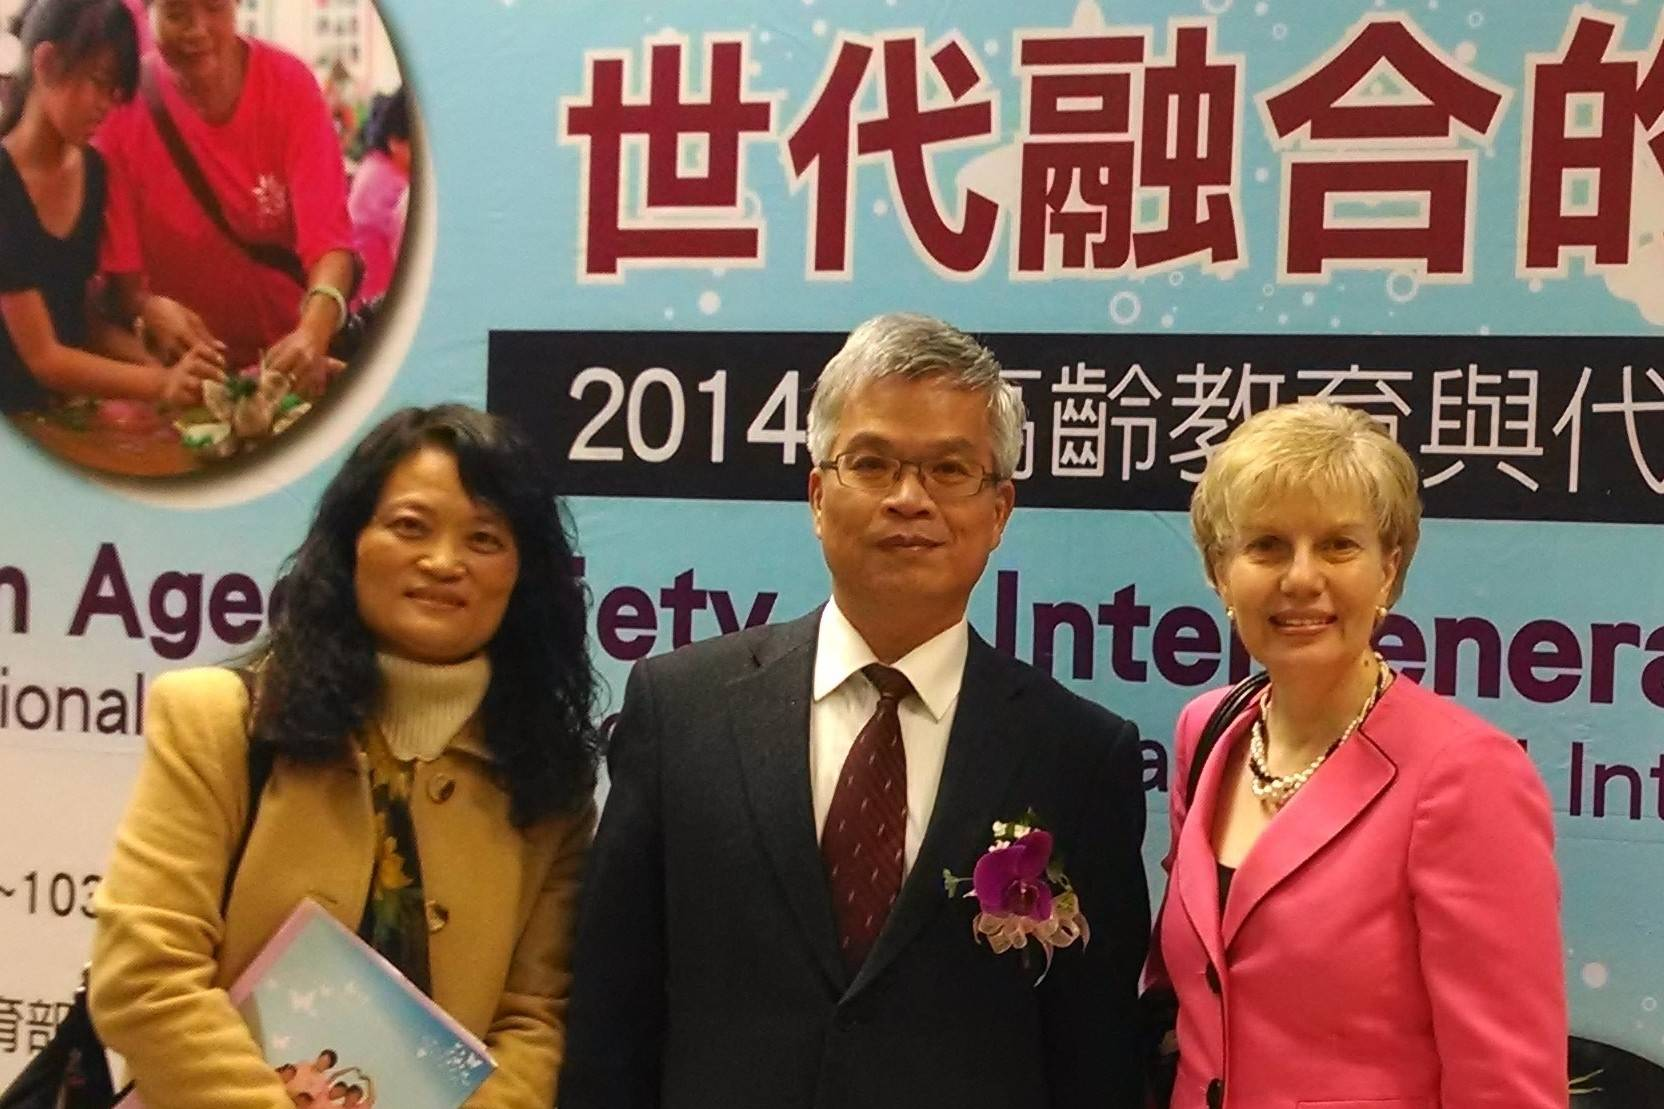 Pictured in front of the conference sign, from left, are: Stephanie Yu-Ching Chen, Ed.D.; Ming-Dih Lin, professor, National Chung Cheng University; and Carol Reagan, PTSCC executive director and NISC chairman.